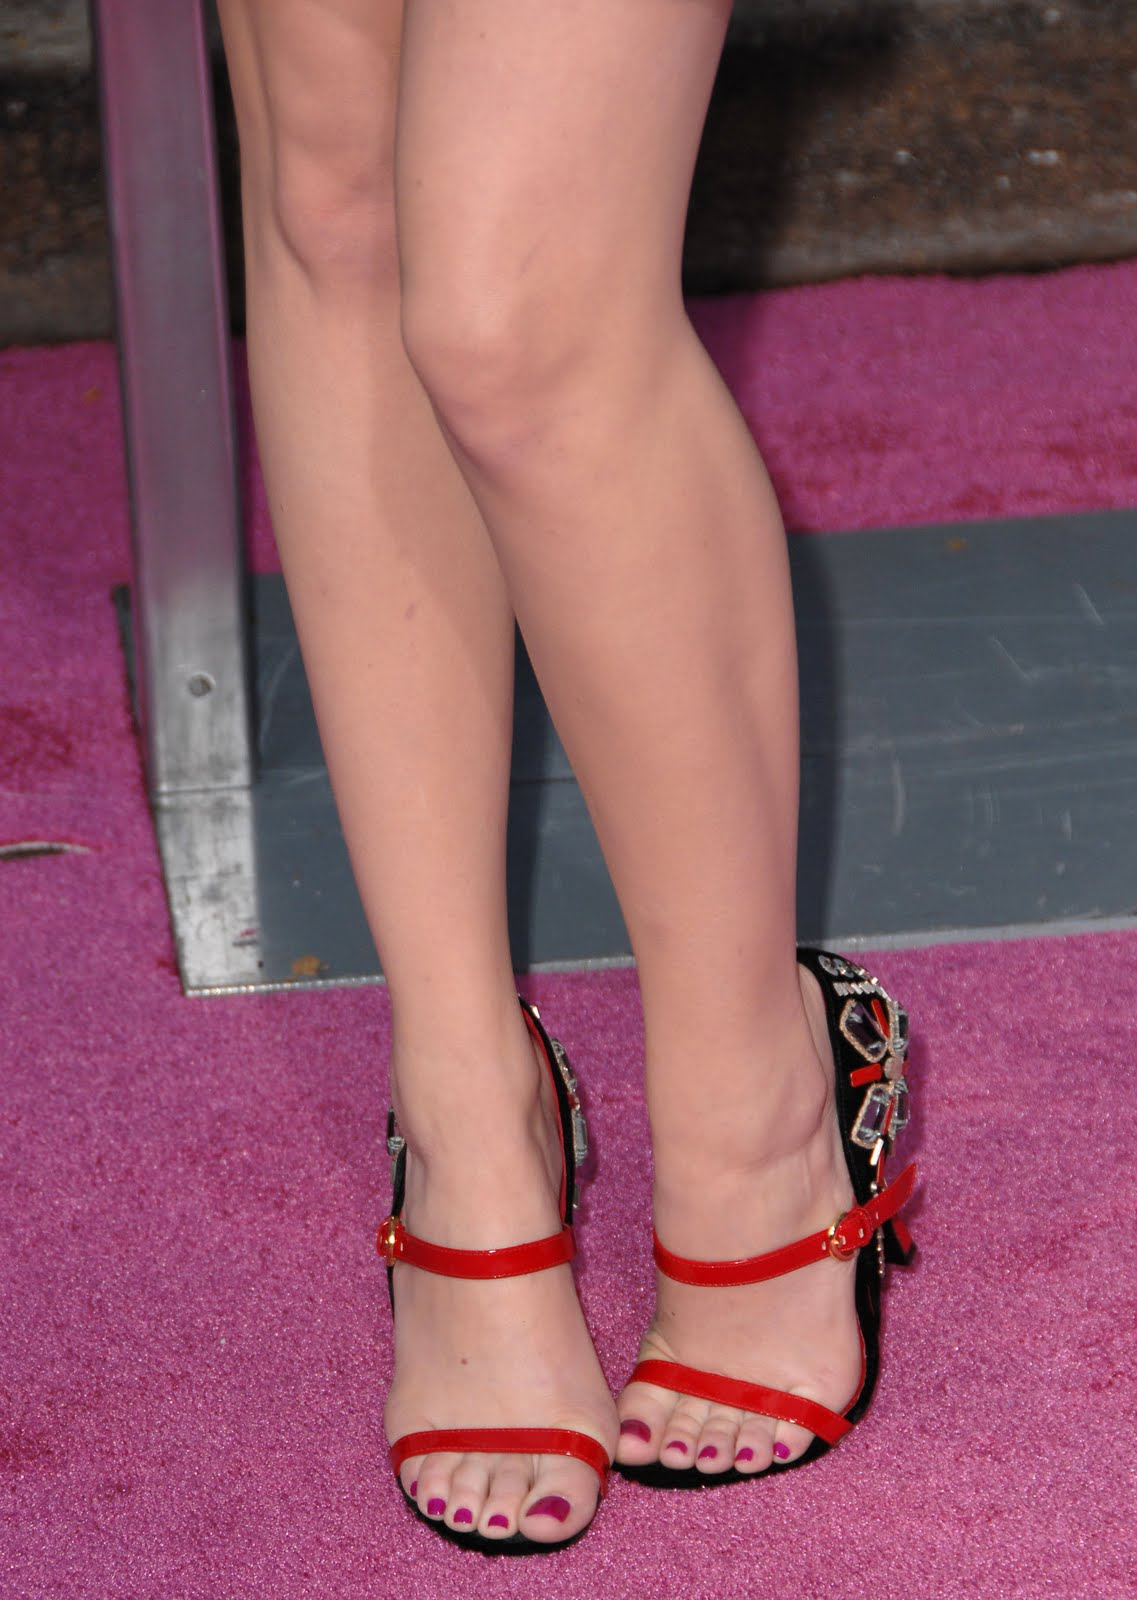 Hot Feet http://www.hollywoodfeet.com/2010/04/emma-stone-feet.html